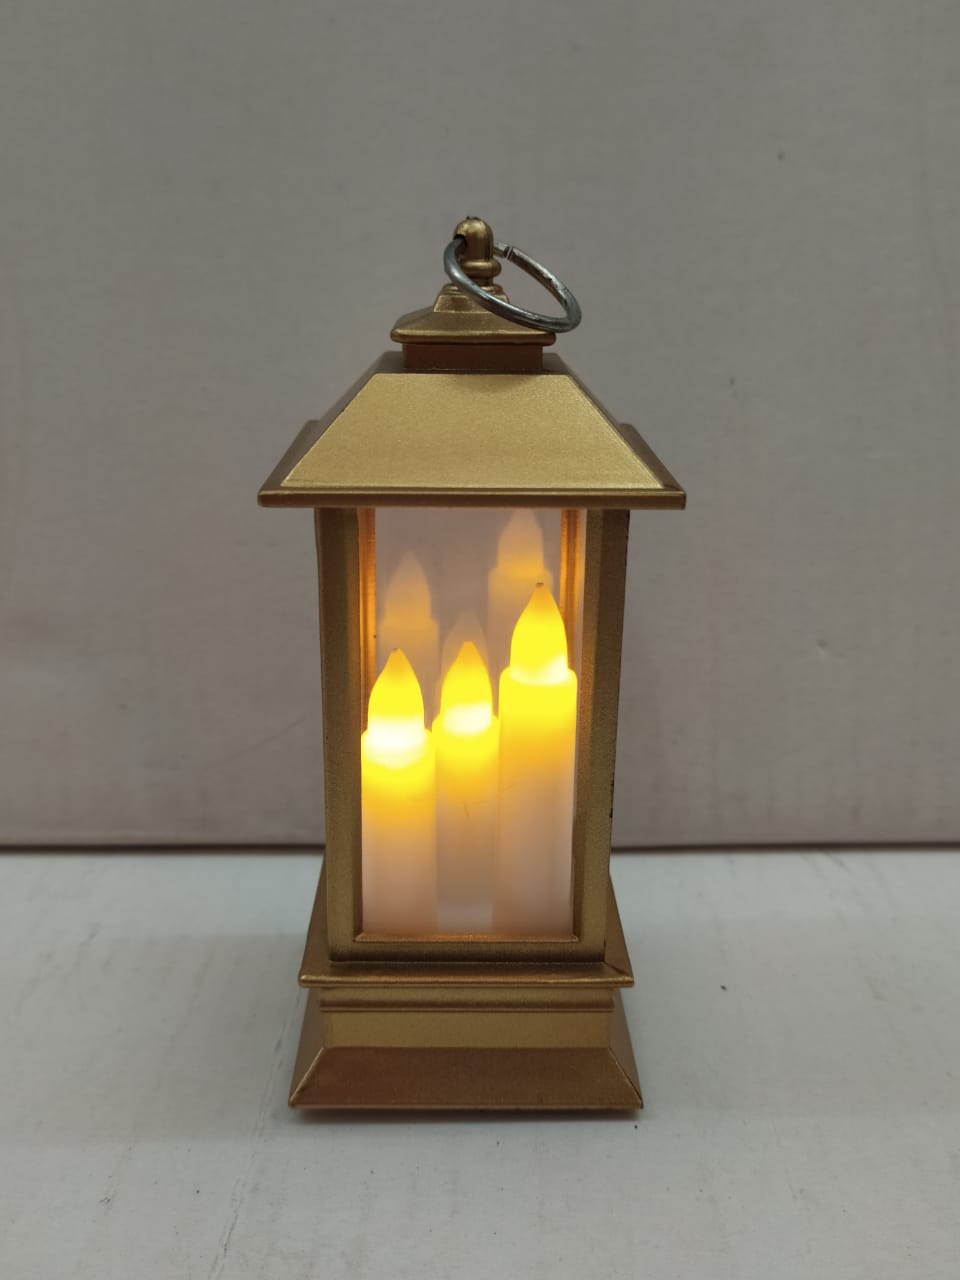 Buy LED Lantern With Candles Design (DC098)Online